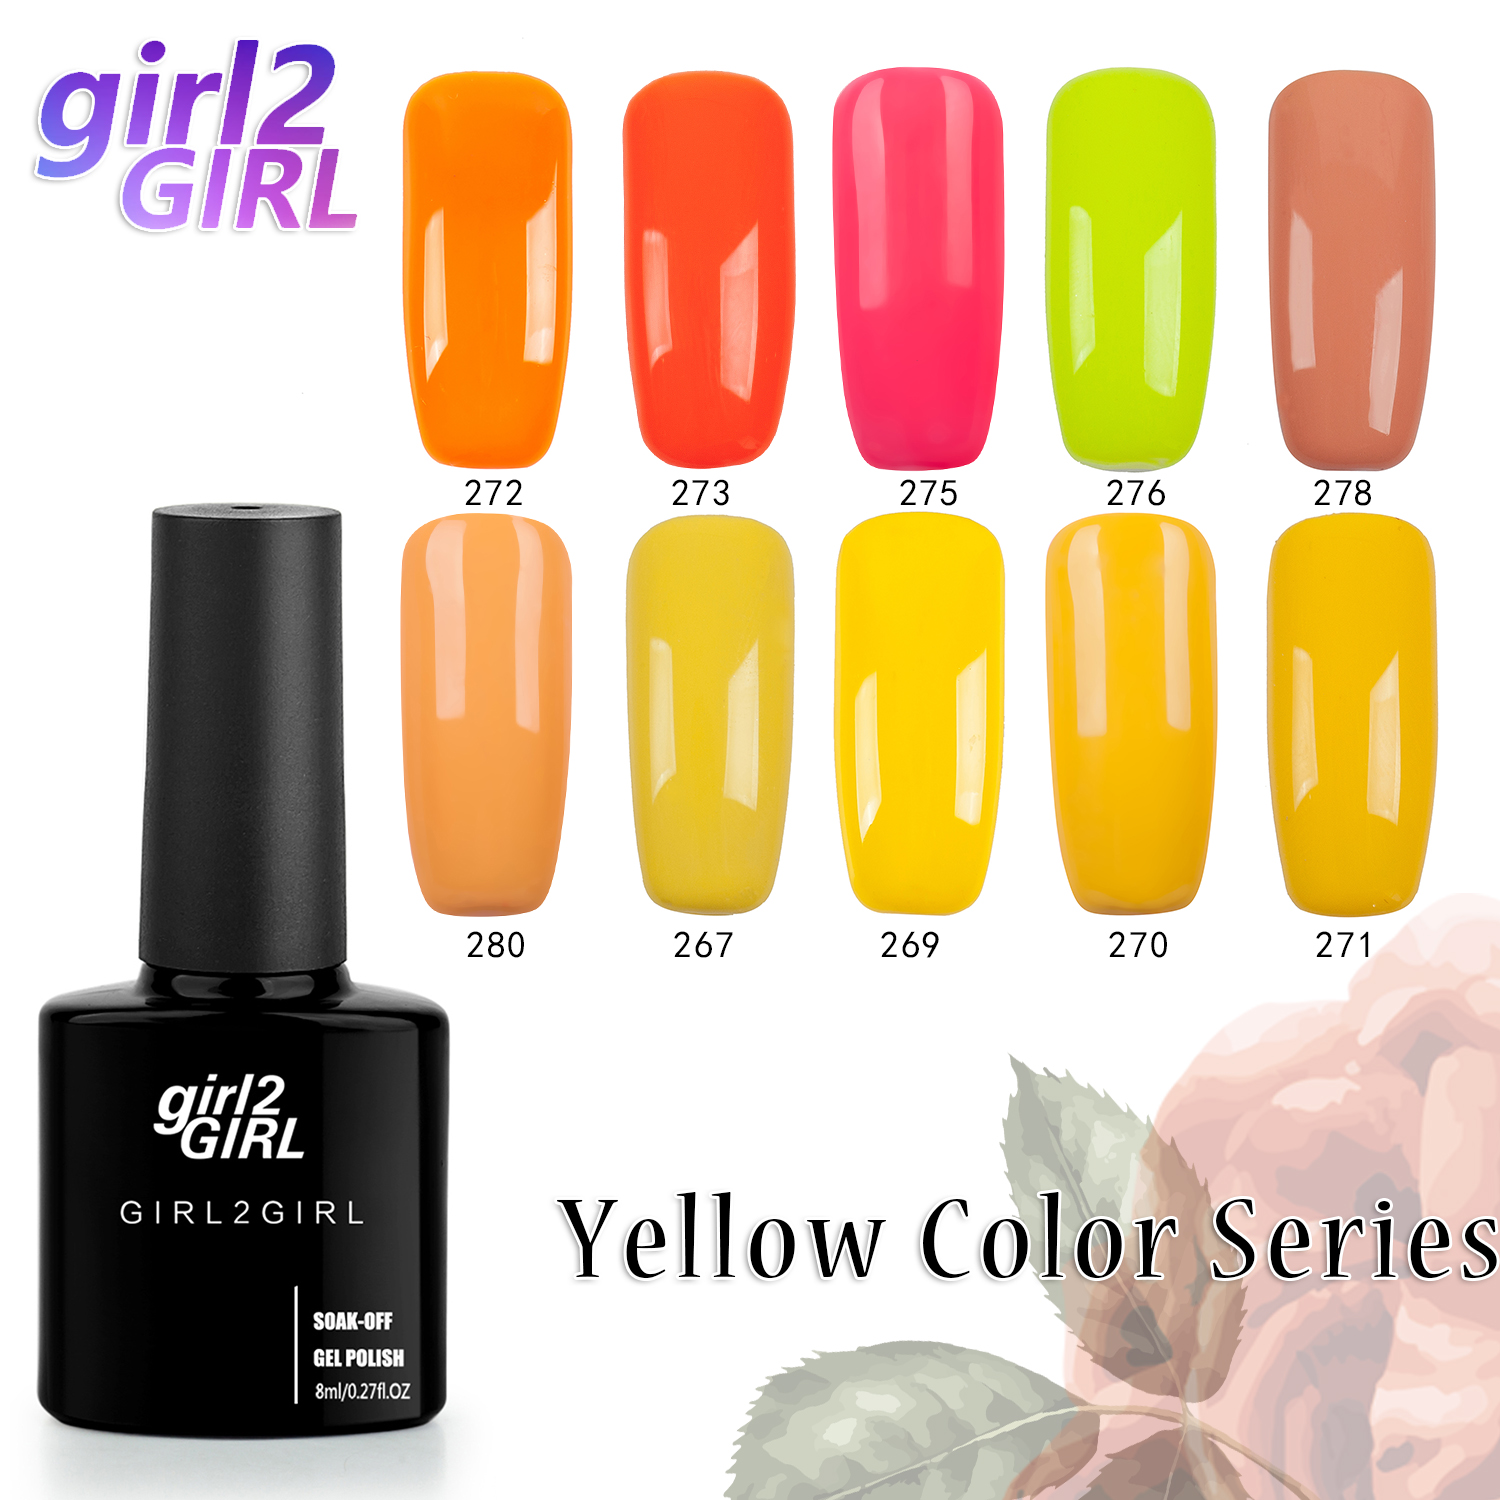 girl2GIRL 8 ML Soak Off UV Gel Nail Gel Polish Cosmetics Nail Art Manicure Nails Gel Polish Nail Varnish  YELLOW set